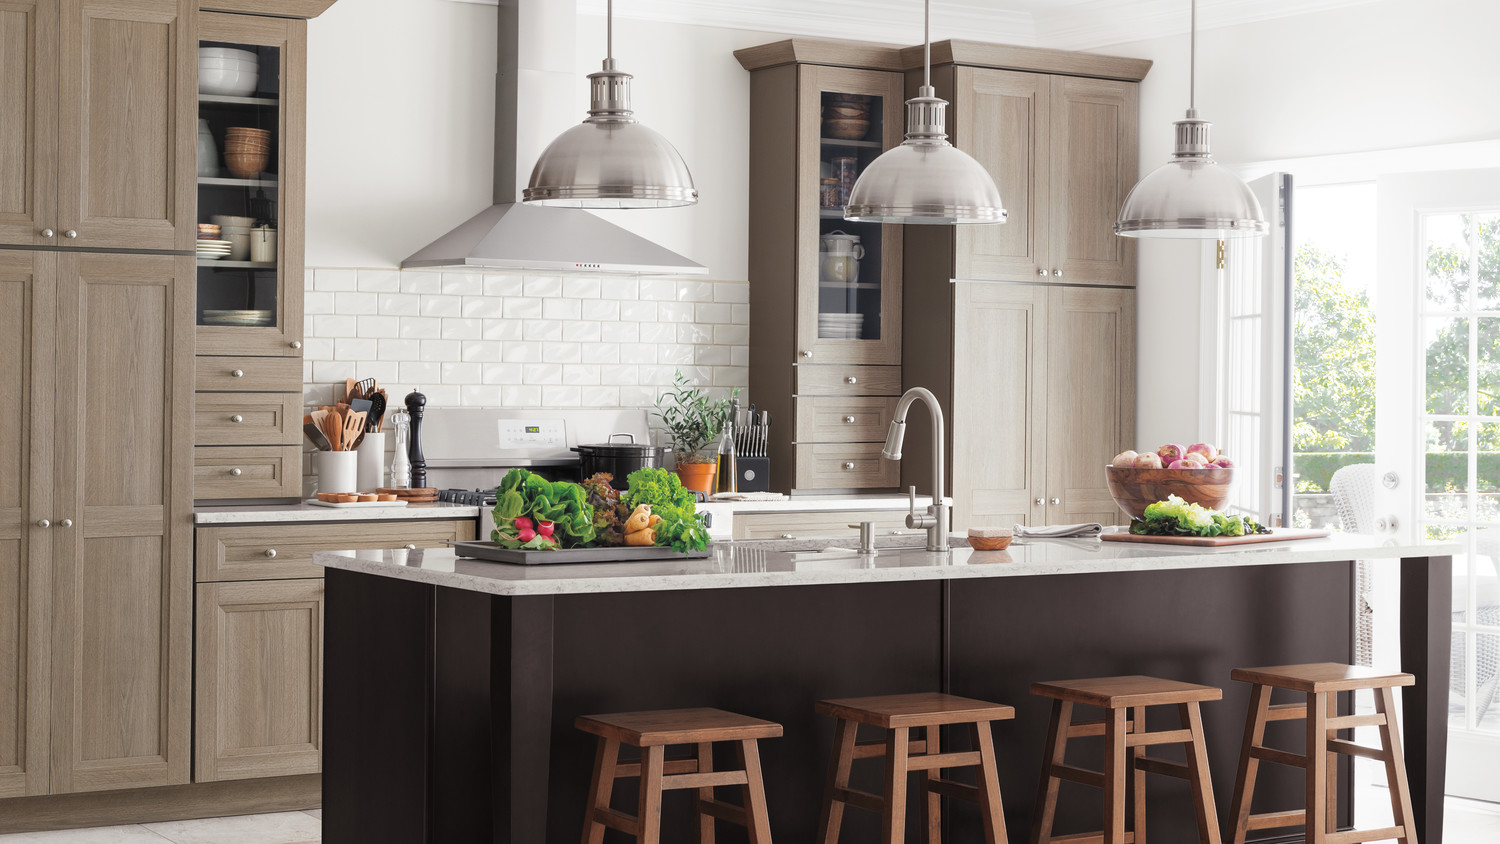 video martha stewart shares her kitchen design inspiration martha rh marthastewart com